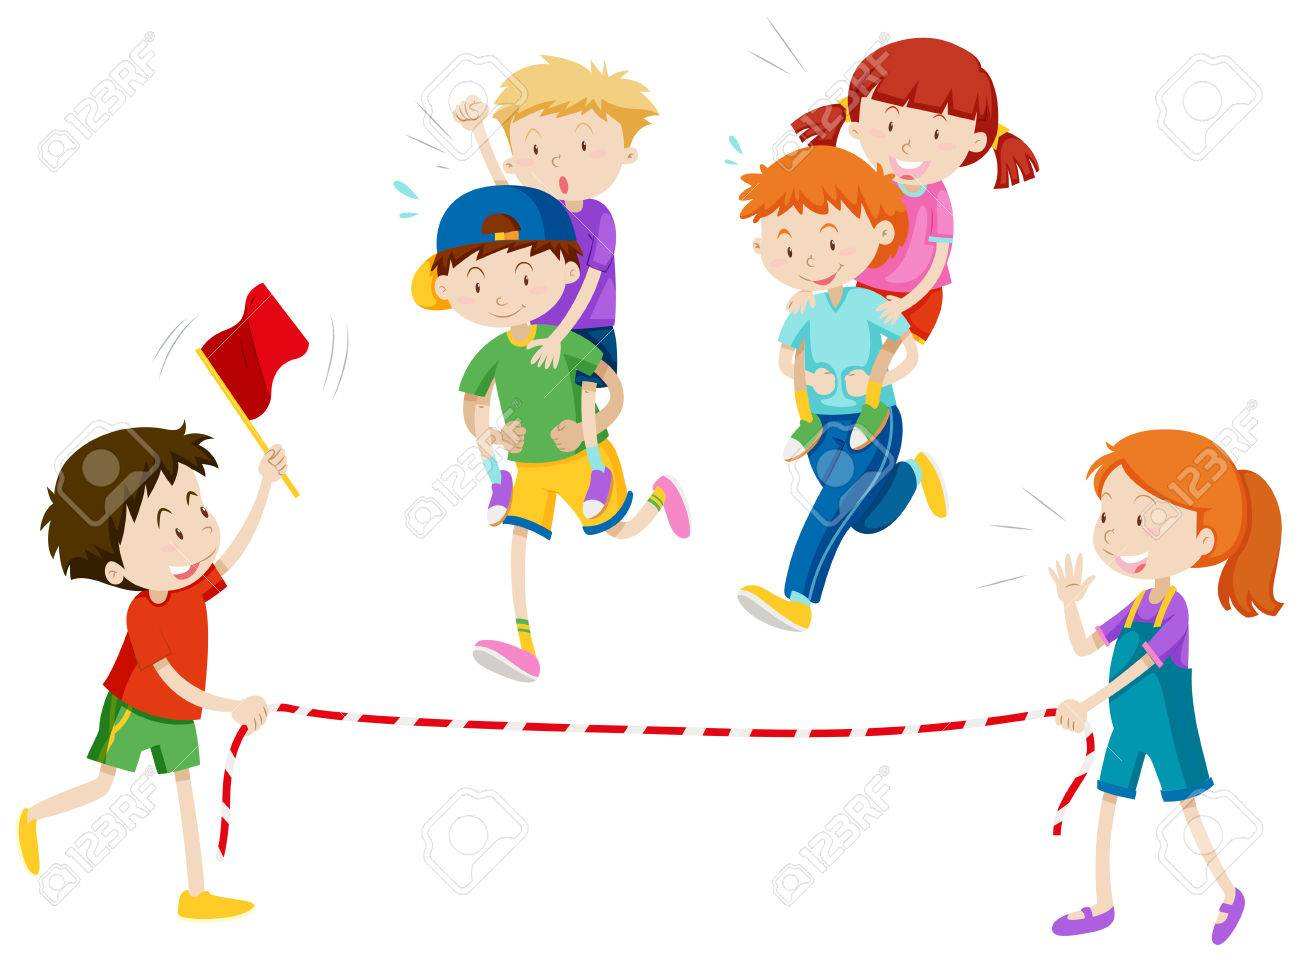 Children playing piggy back ride race illustration.